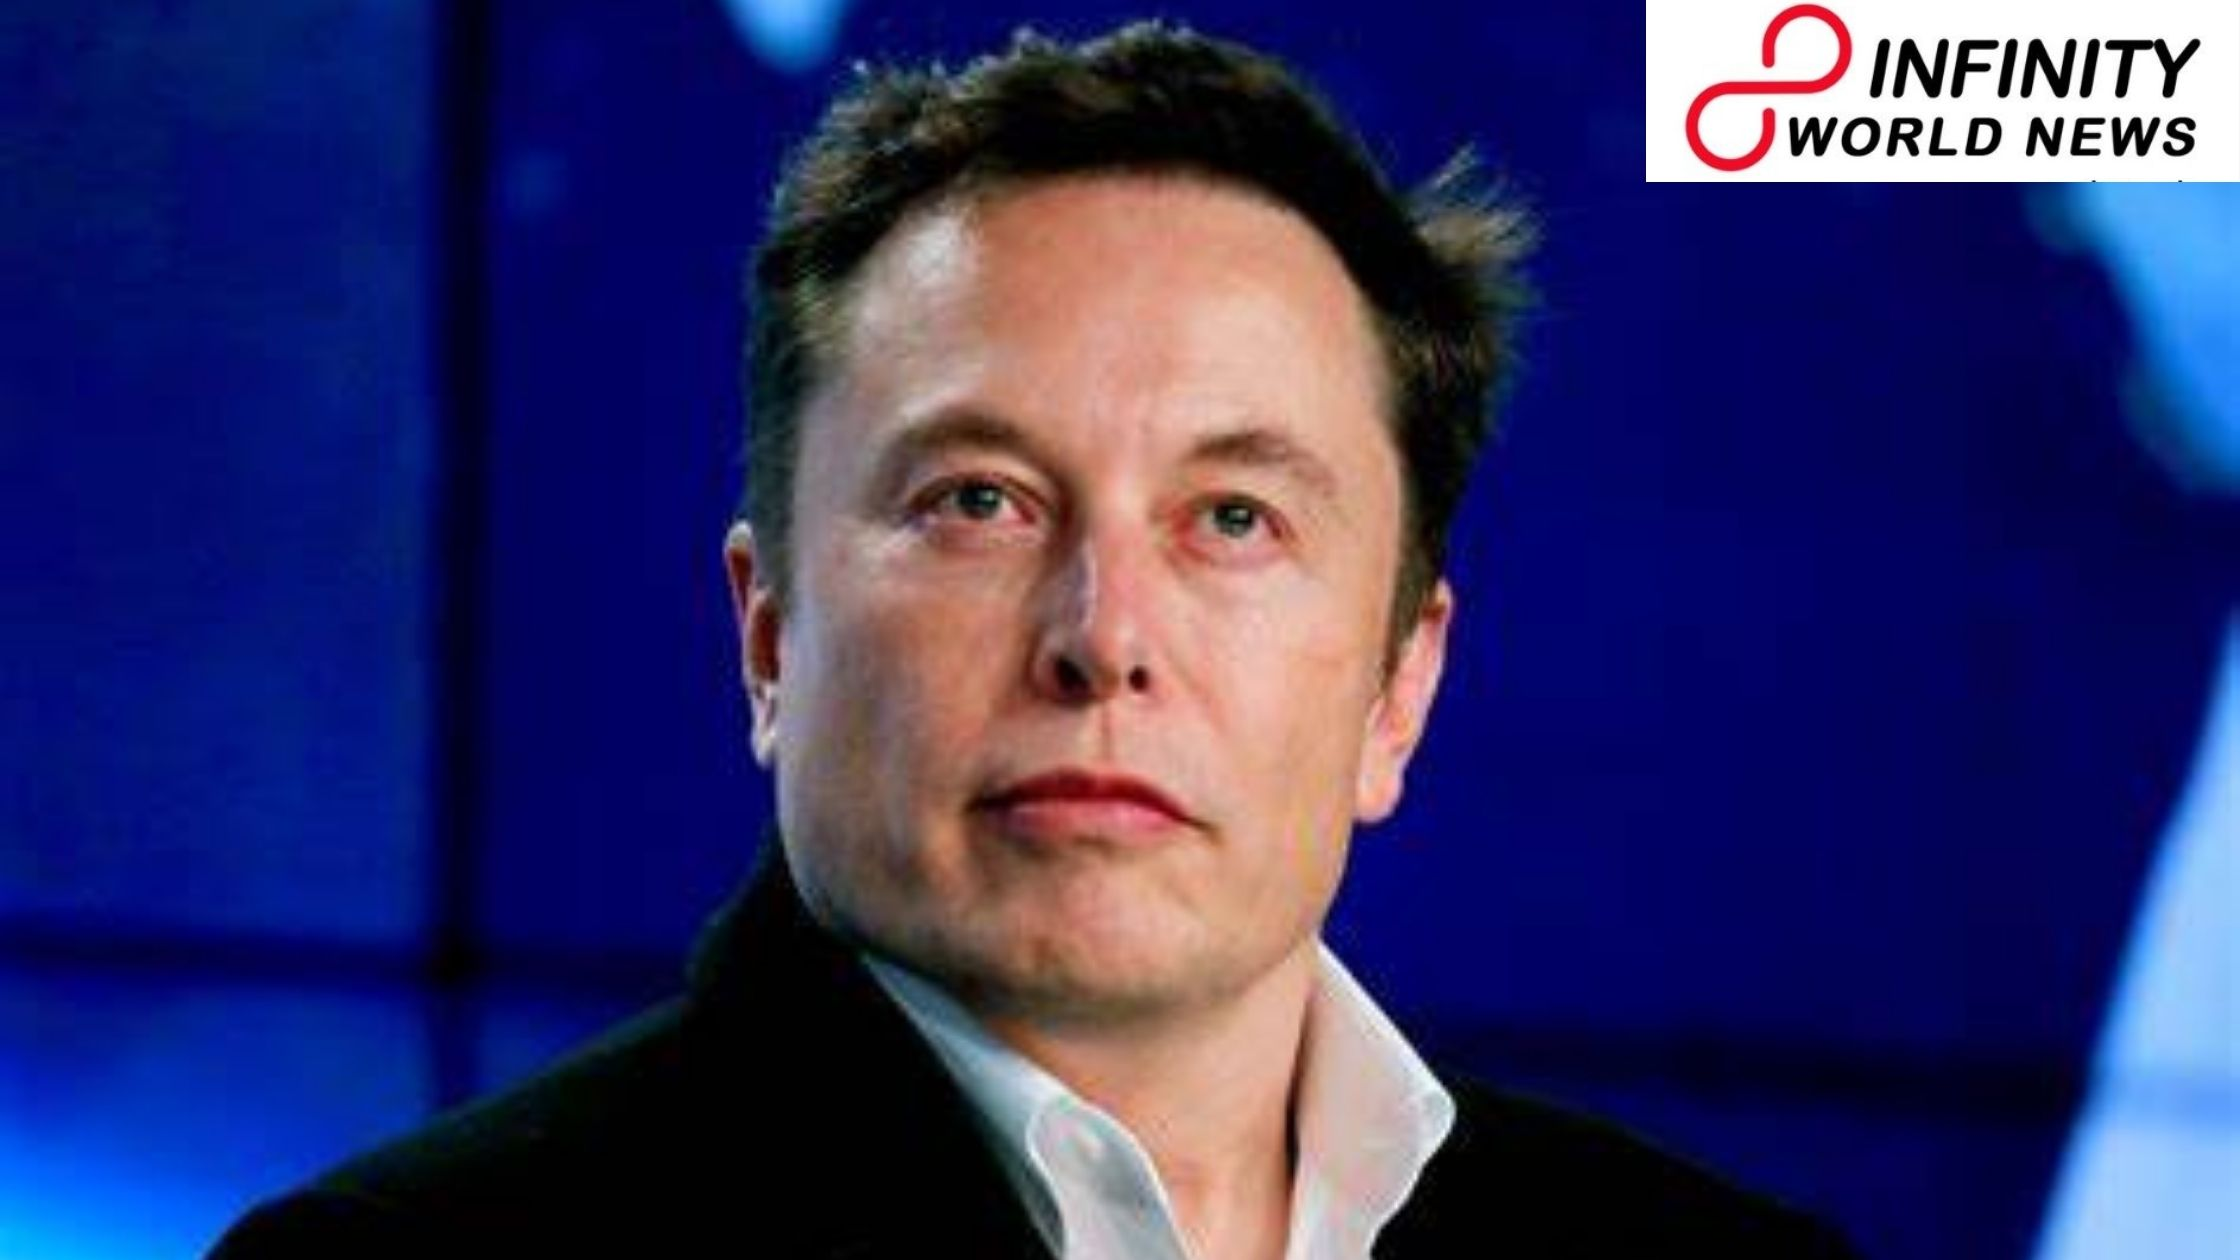 Elon Musk Reveals He Has A Monkey Including Wires in Brain Who Can Perform Video Games With Its Mind